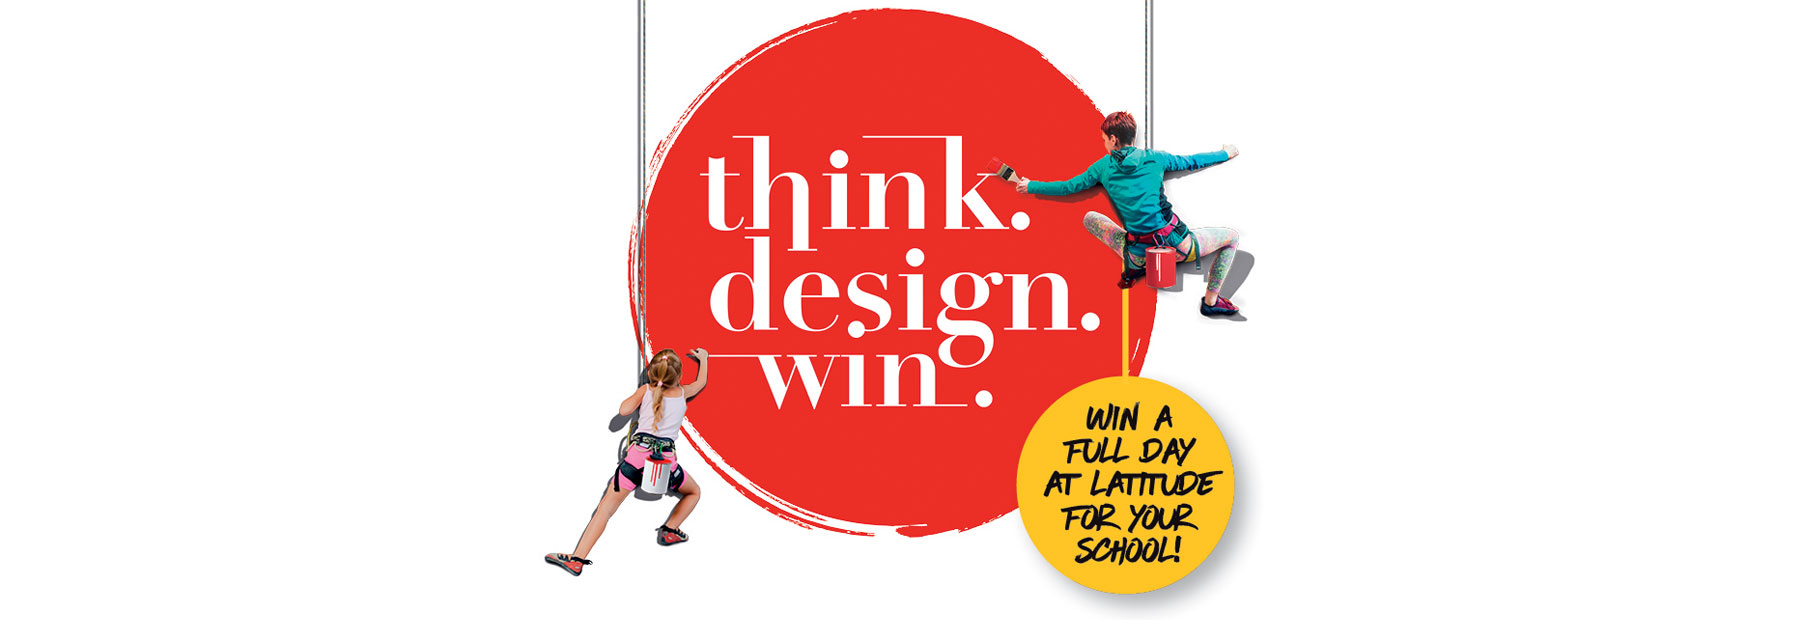 THINK.DESIGN.WIN COMPETITION